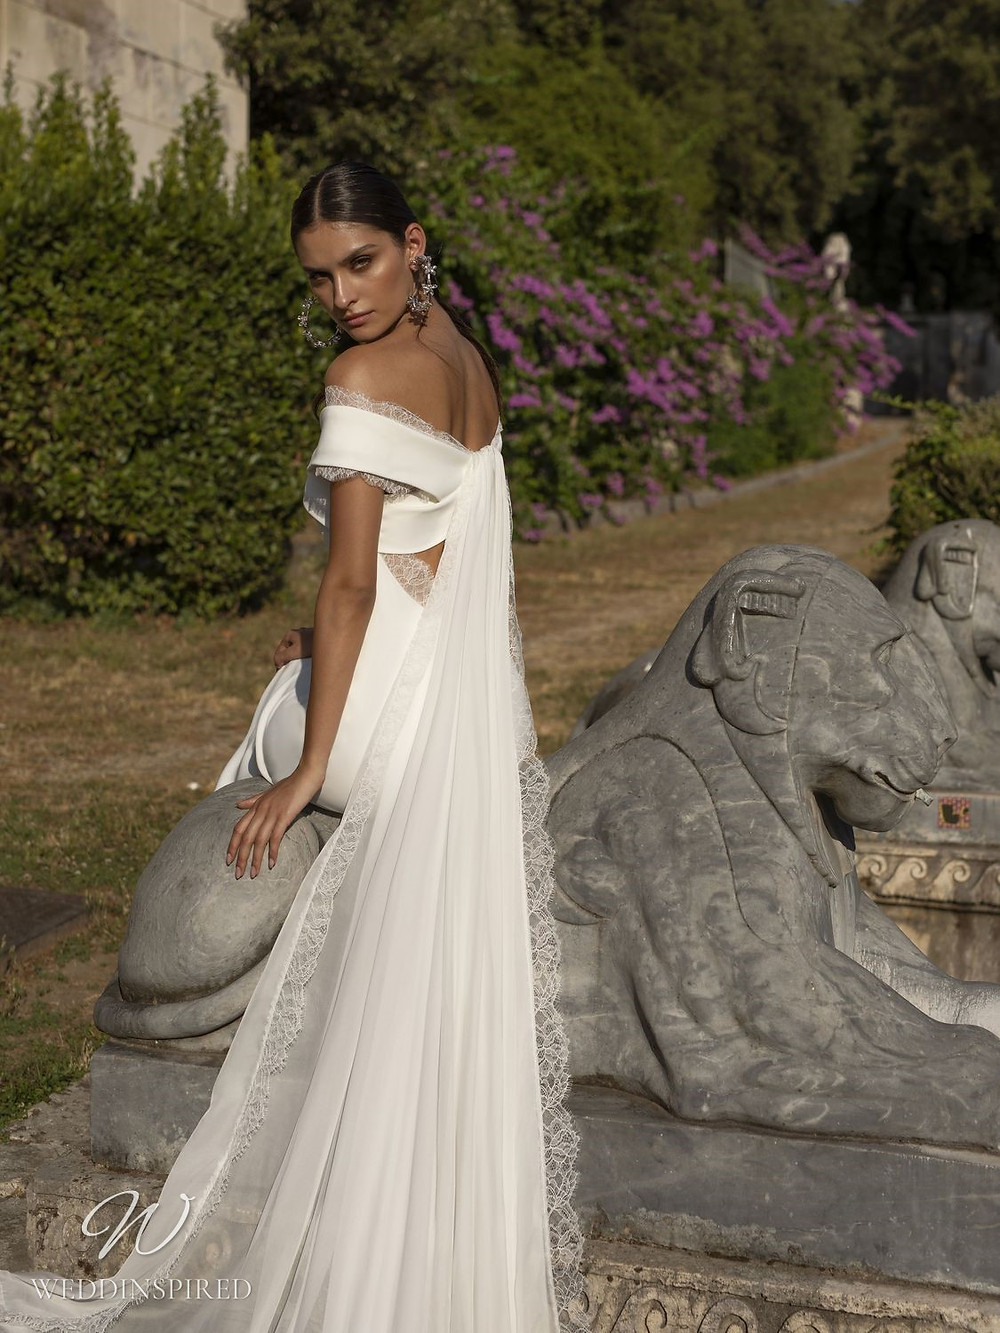 A Pinella Passaro off the shoulder lace and silk mermaid wedding dress with a detachable veil or cape